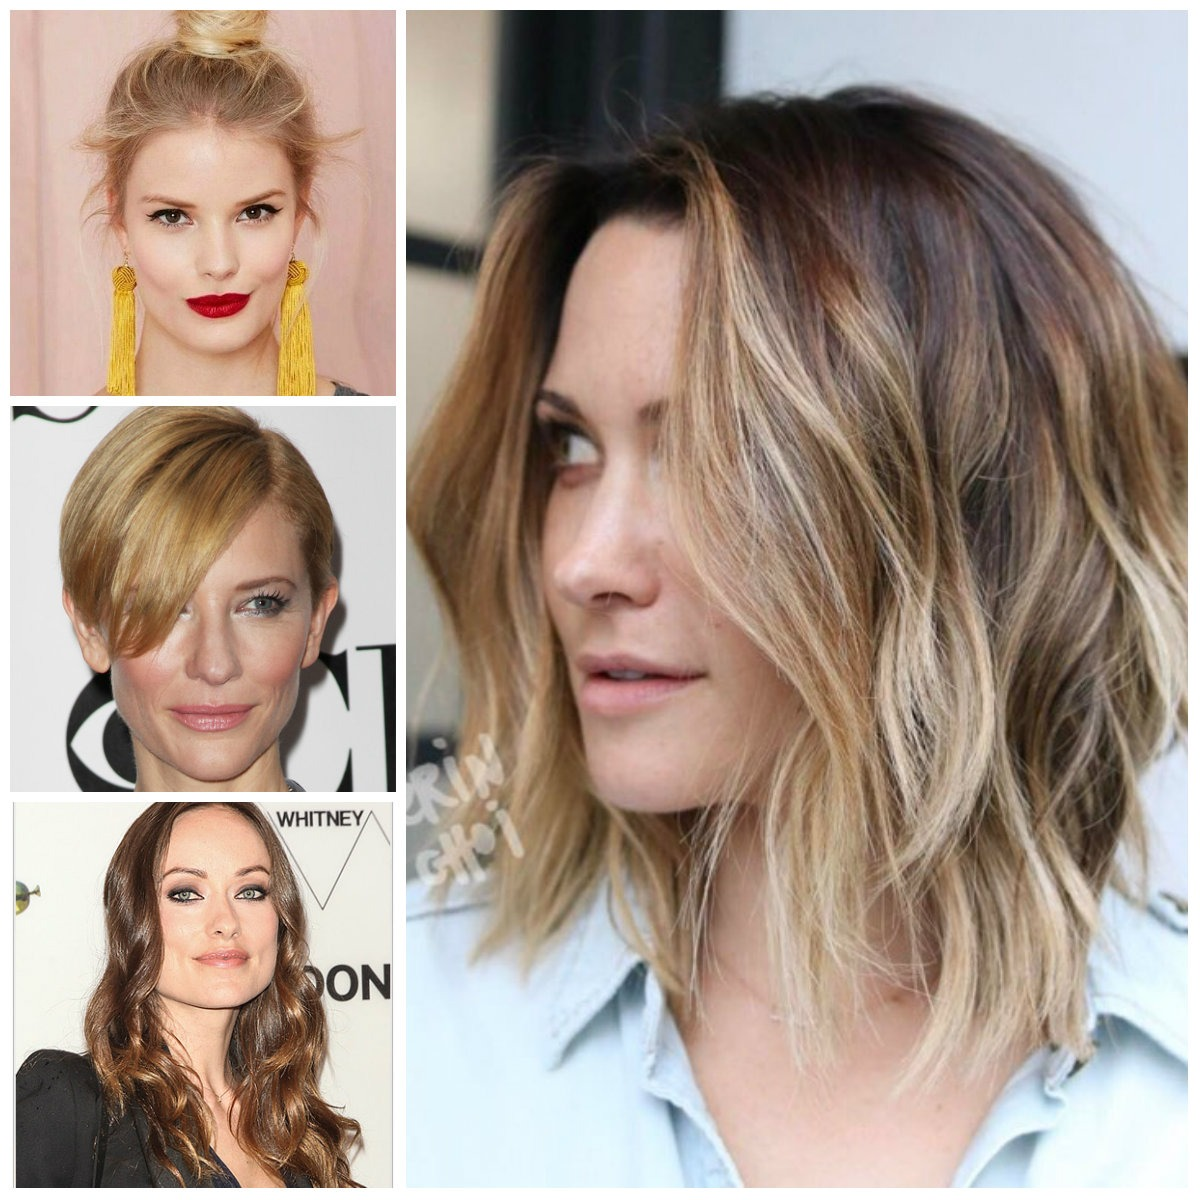 Hairstyles for women with square faces in 2018